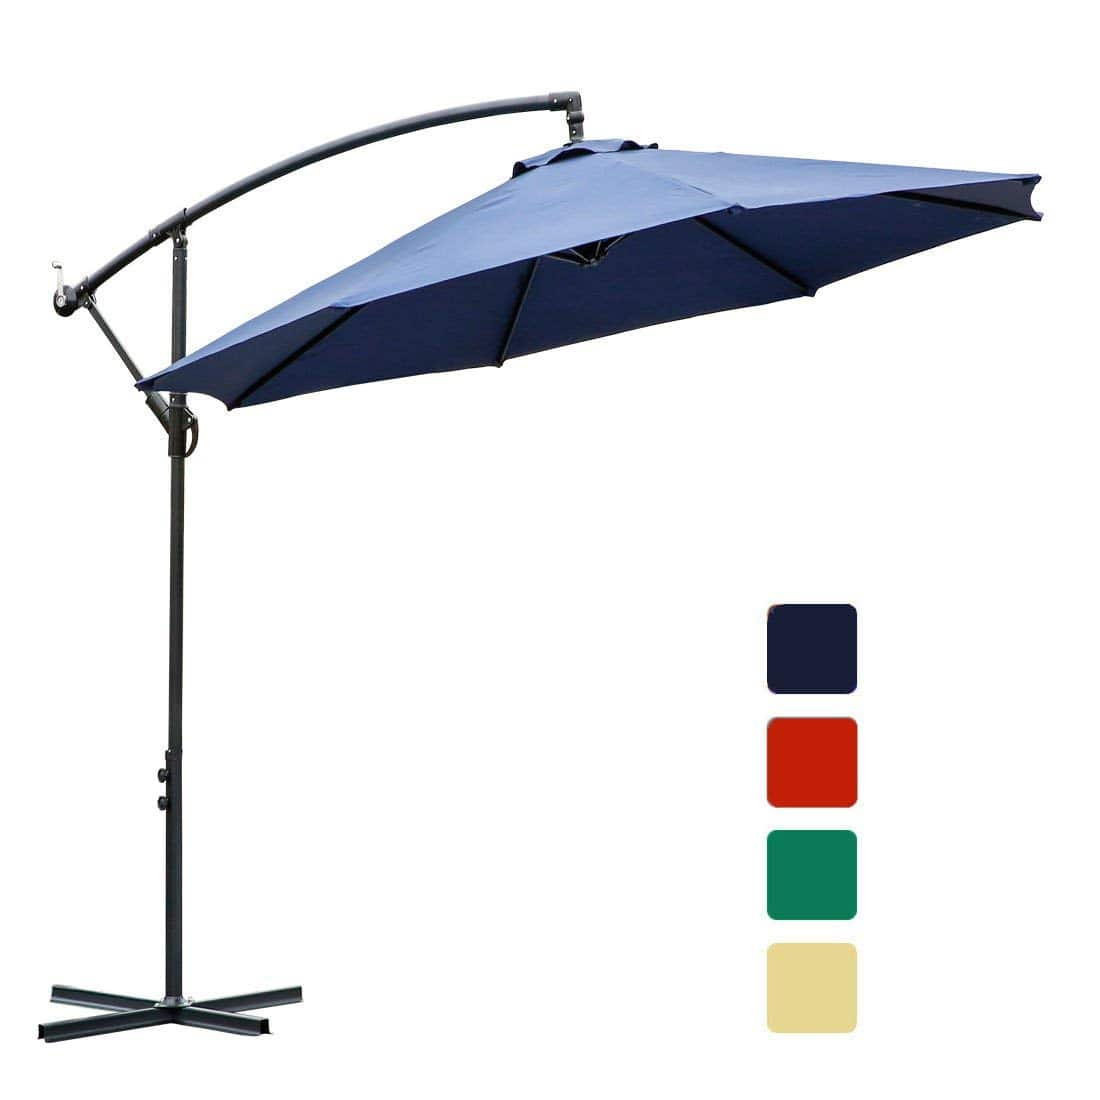 Offset Patio Umbrella with Cantilever, Crank Lift & 360° Rotation $123.4